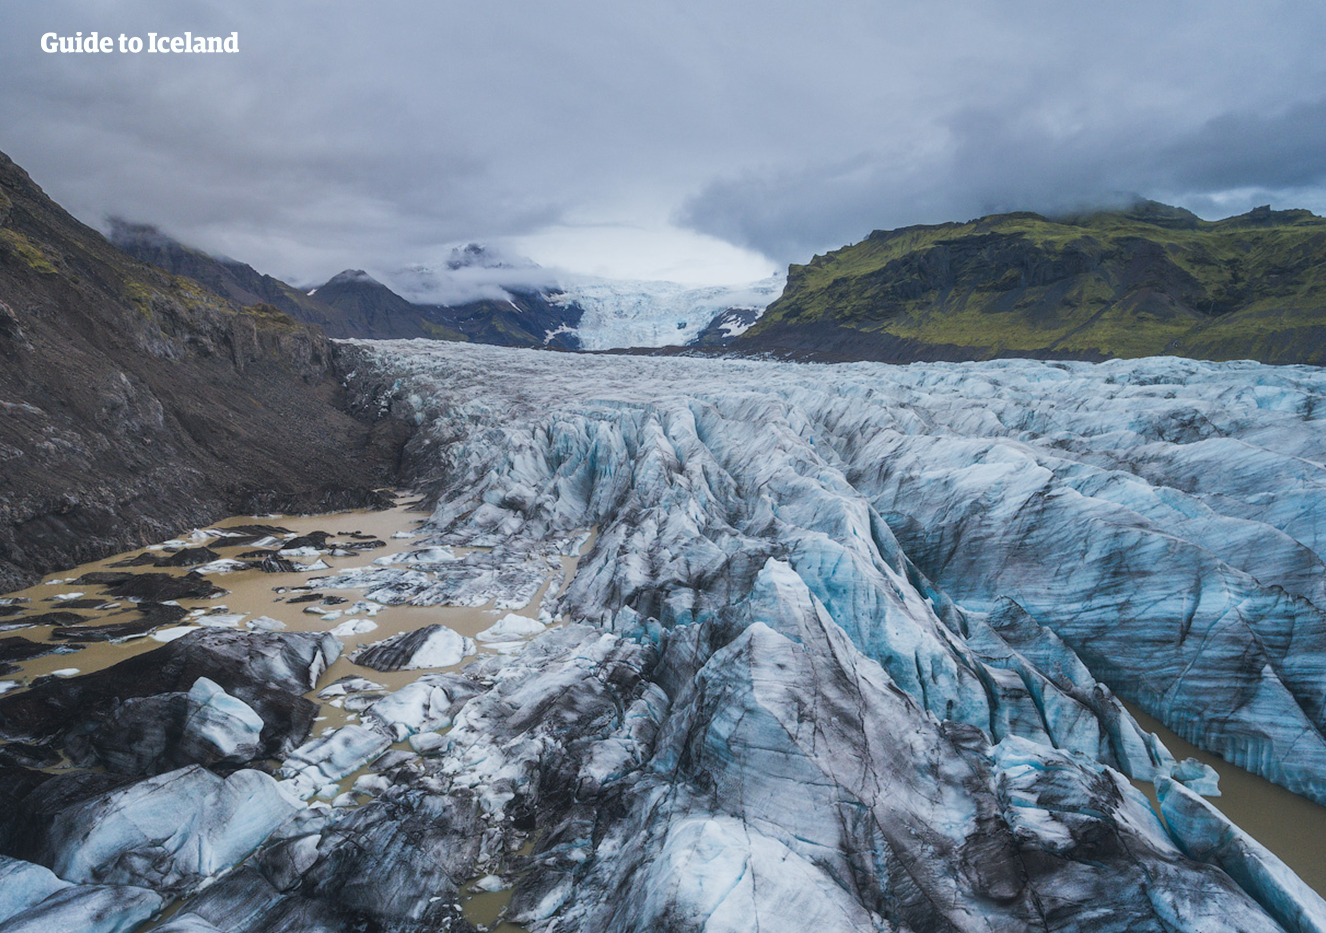 The glacier at Skaftafell was used for scenes beyond the Wall in Game of Thrones.